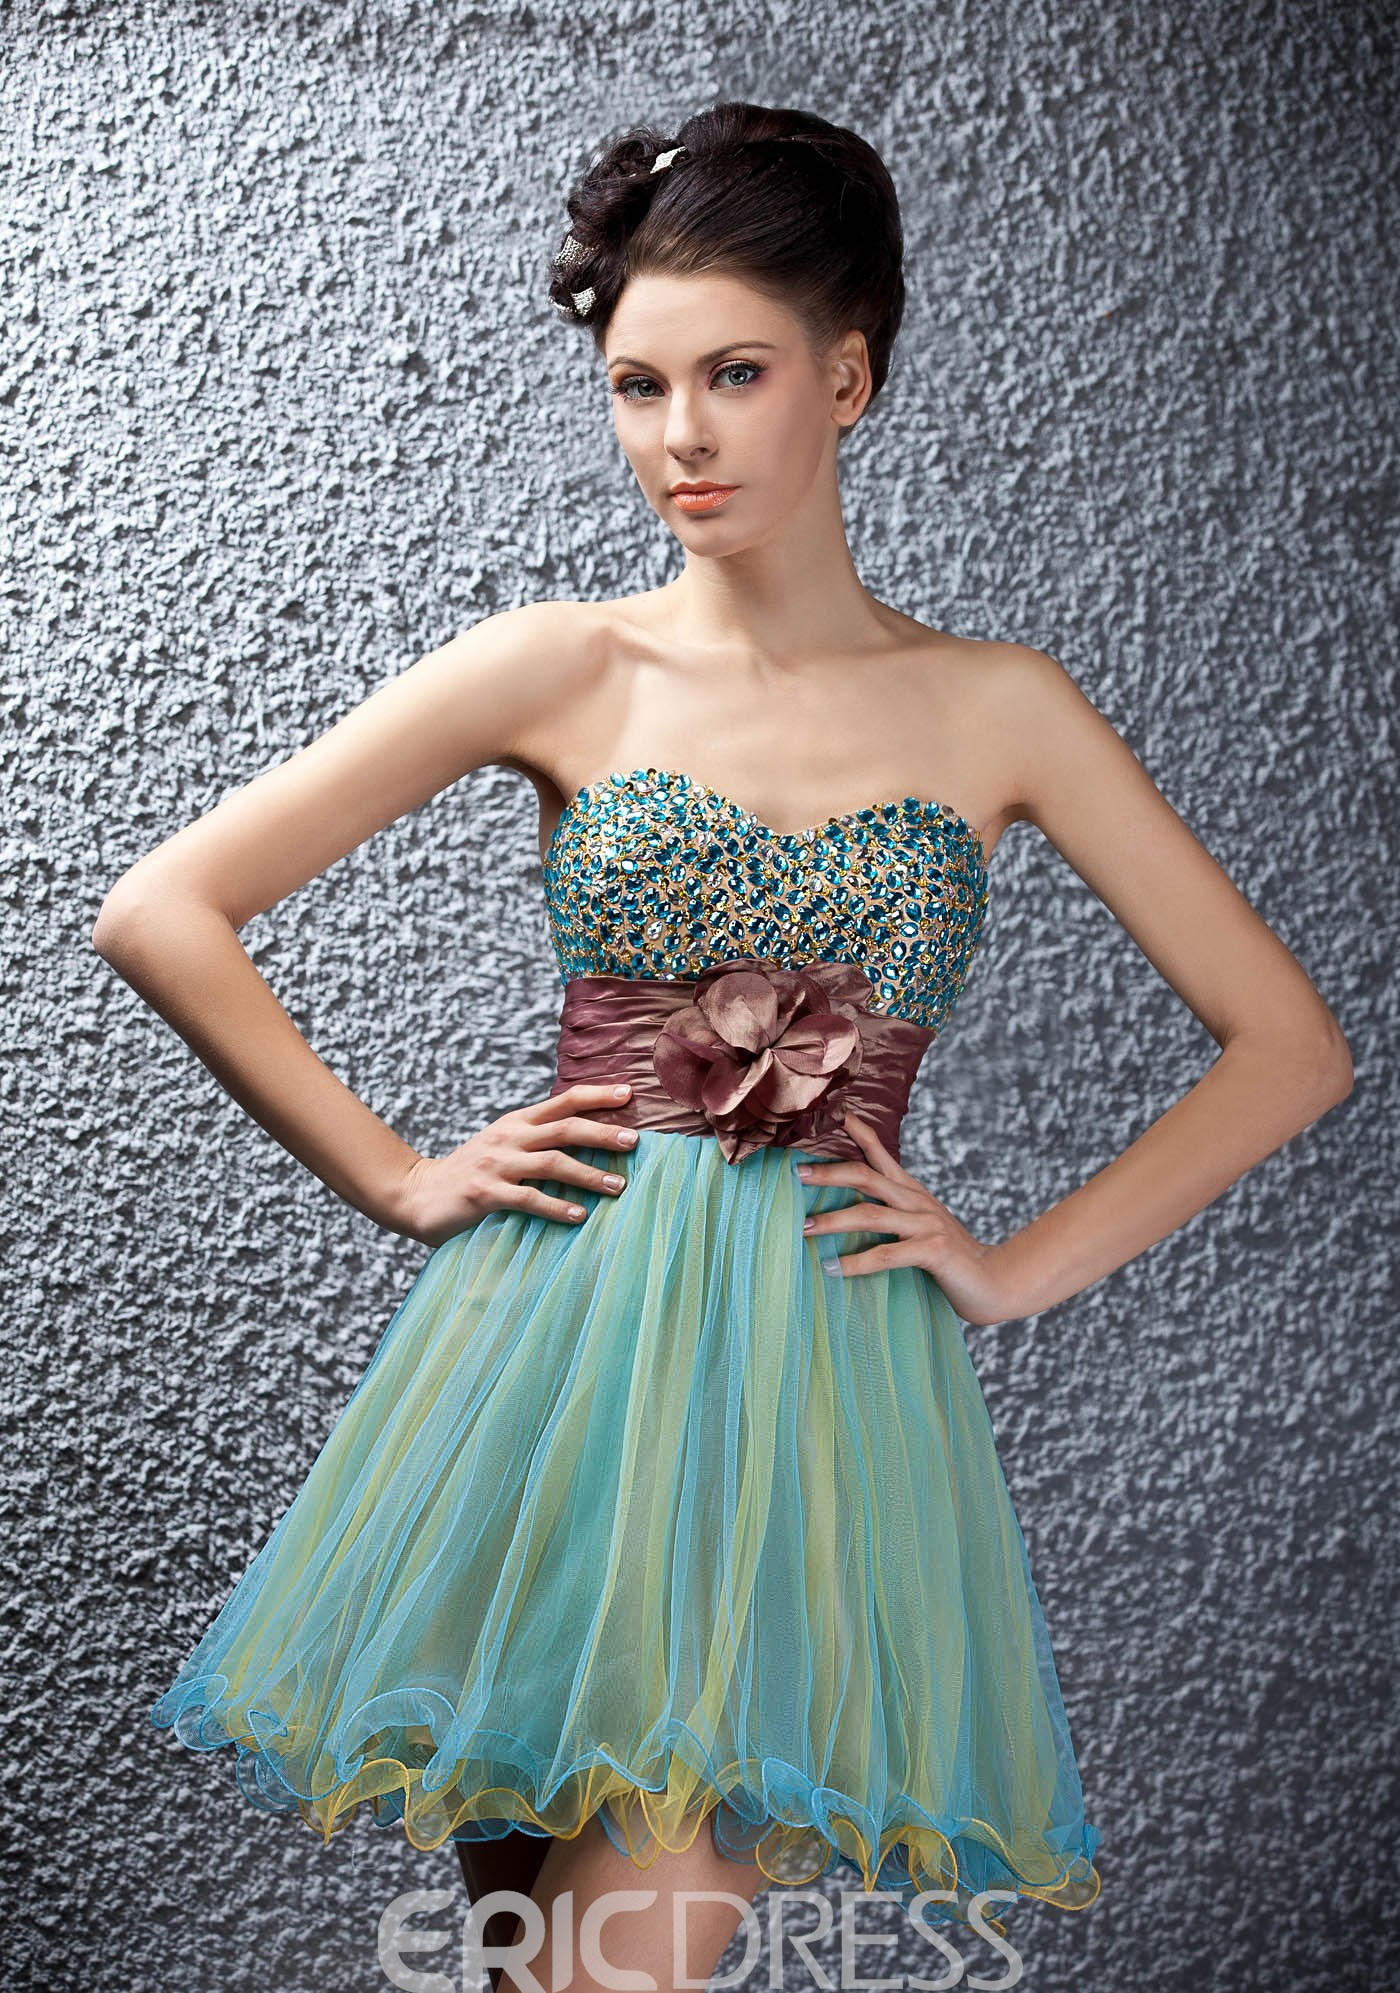 A-line Beads Empire Crystal Mini/Short Polinas Homecoming/Prom Dress